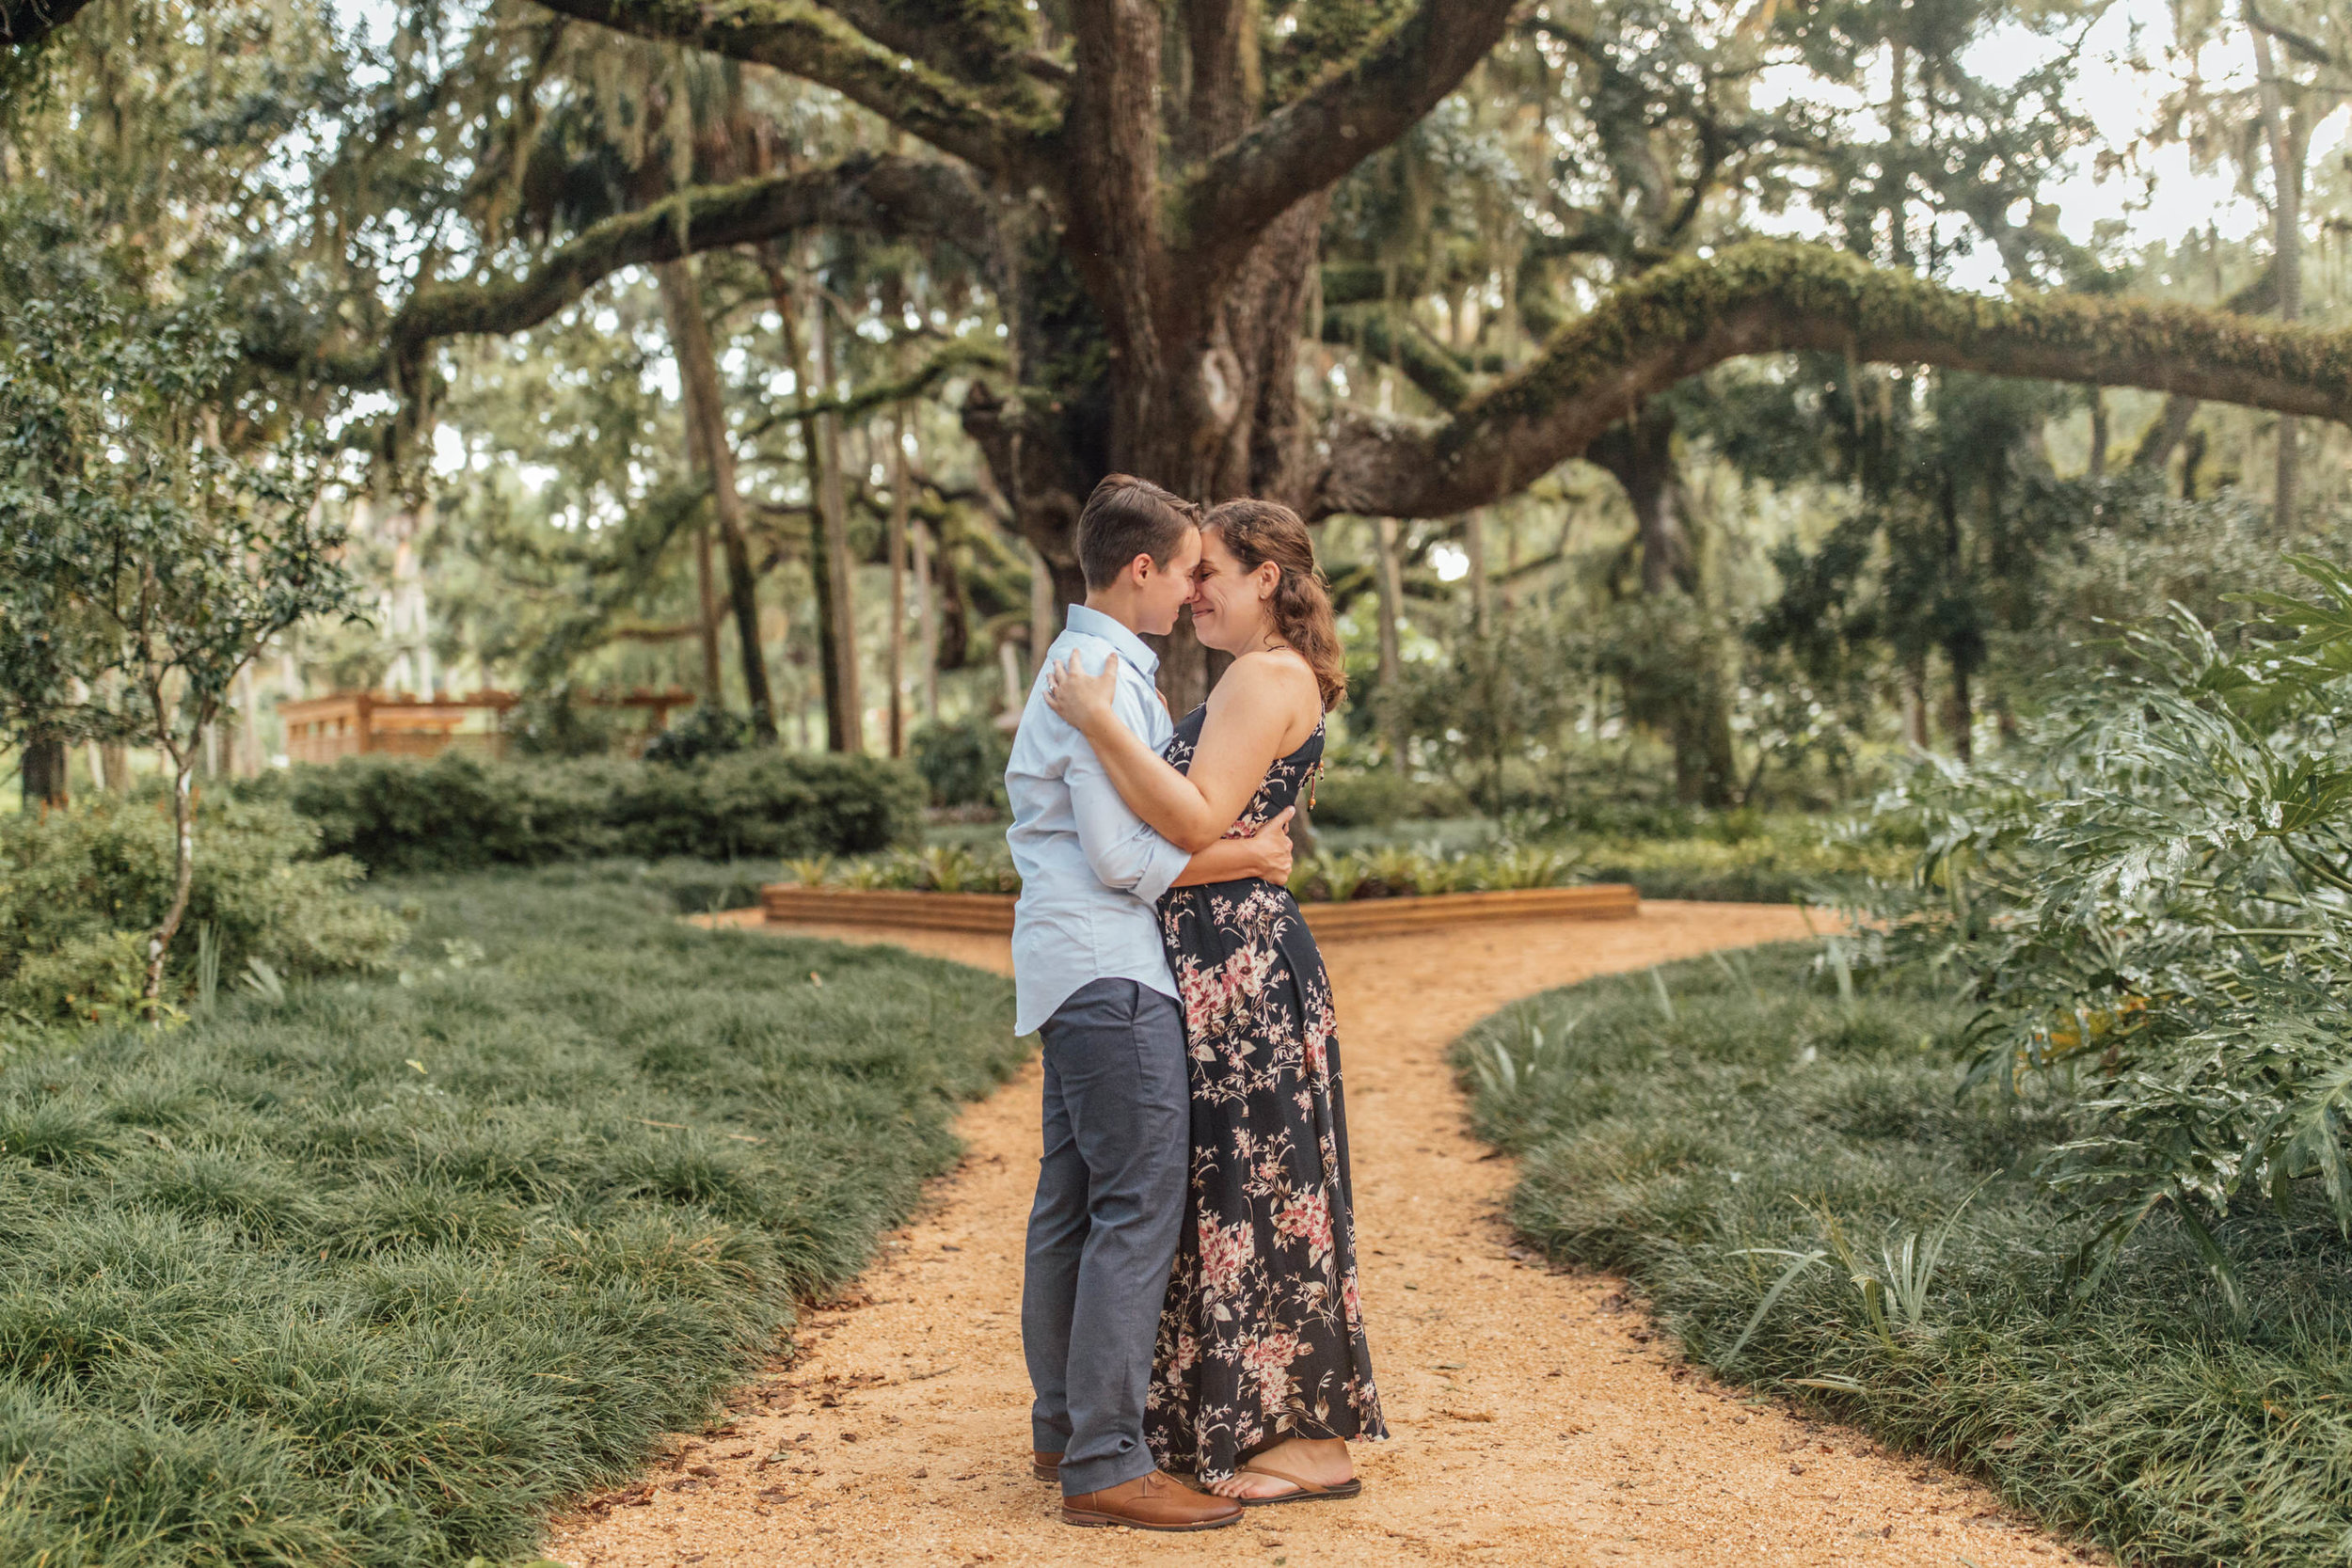 Orlando Natural Forest State Park Engagement Photos- Romantic LGBT Engaged Couples photos92.jpg